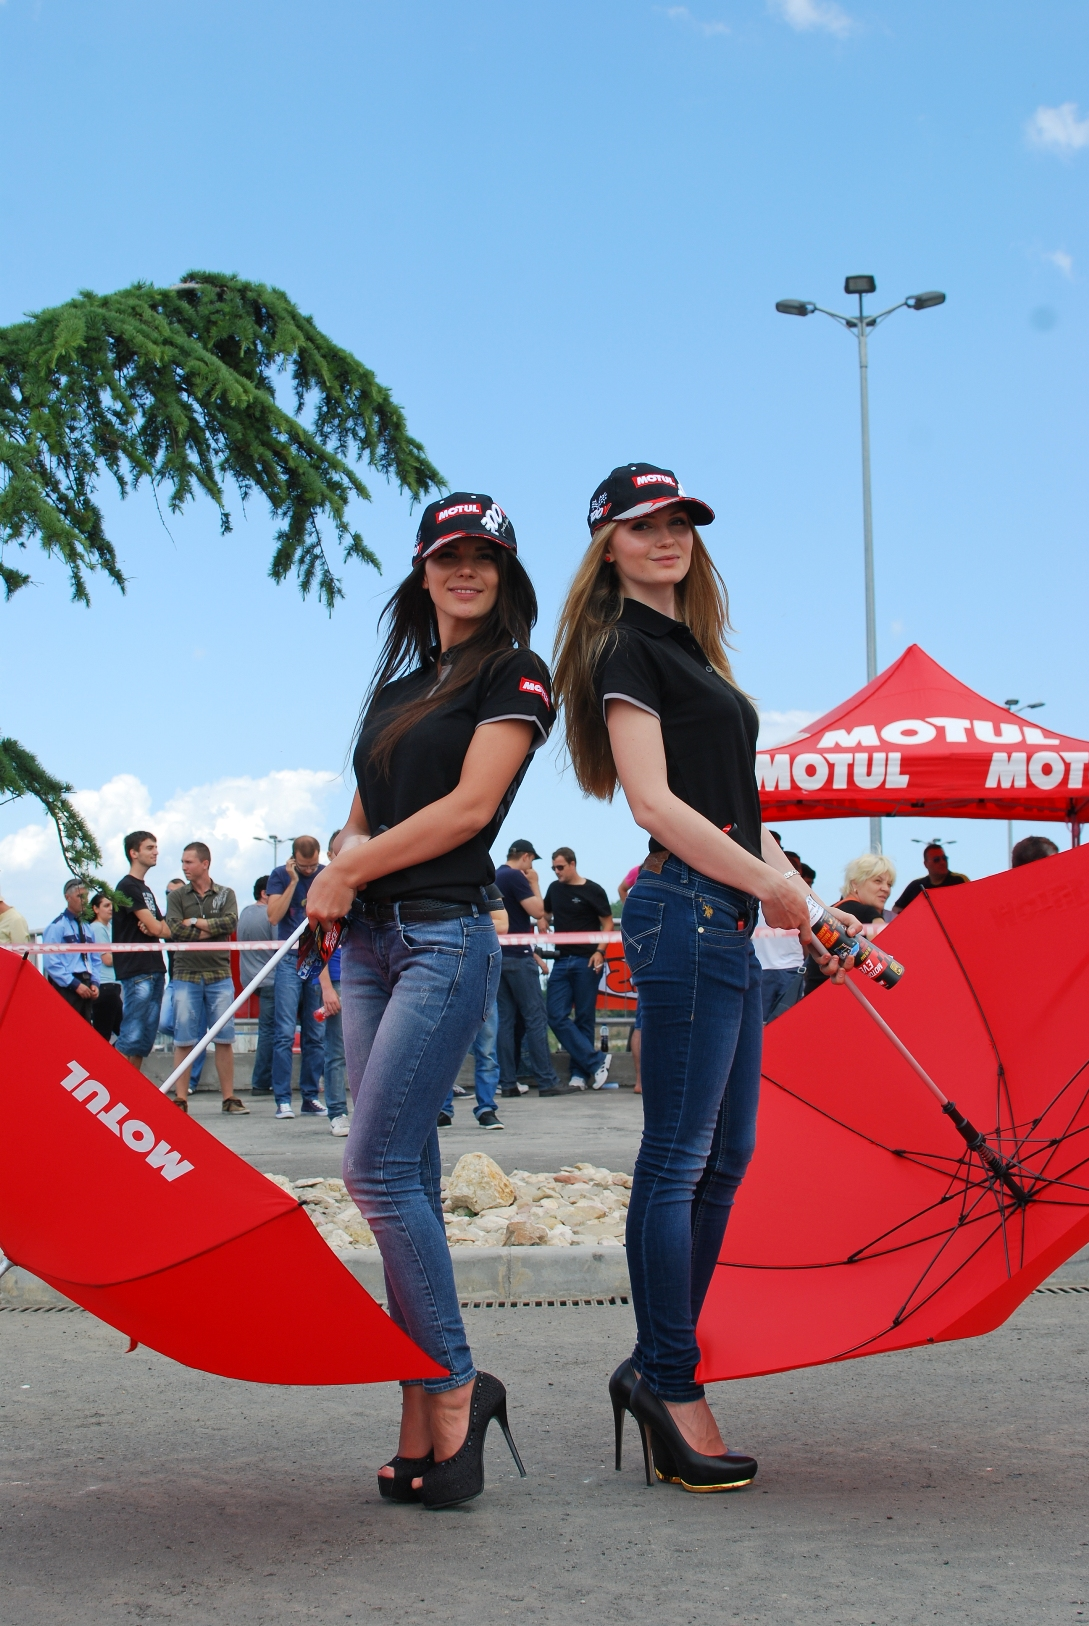 Hostess+Constanta-+Motul+2013+(2).JPG